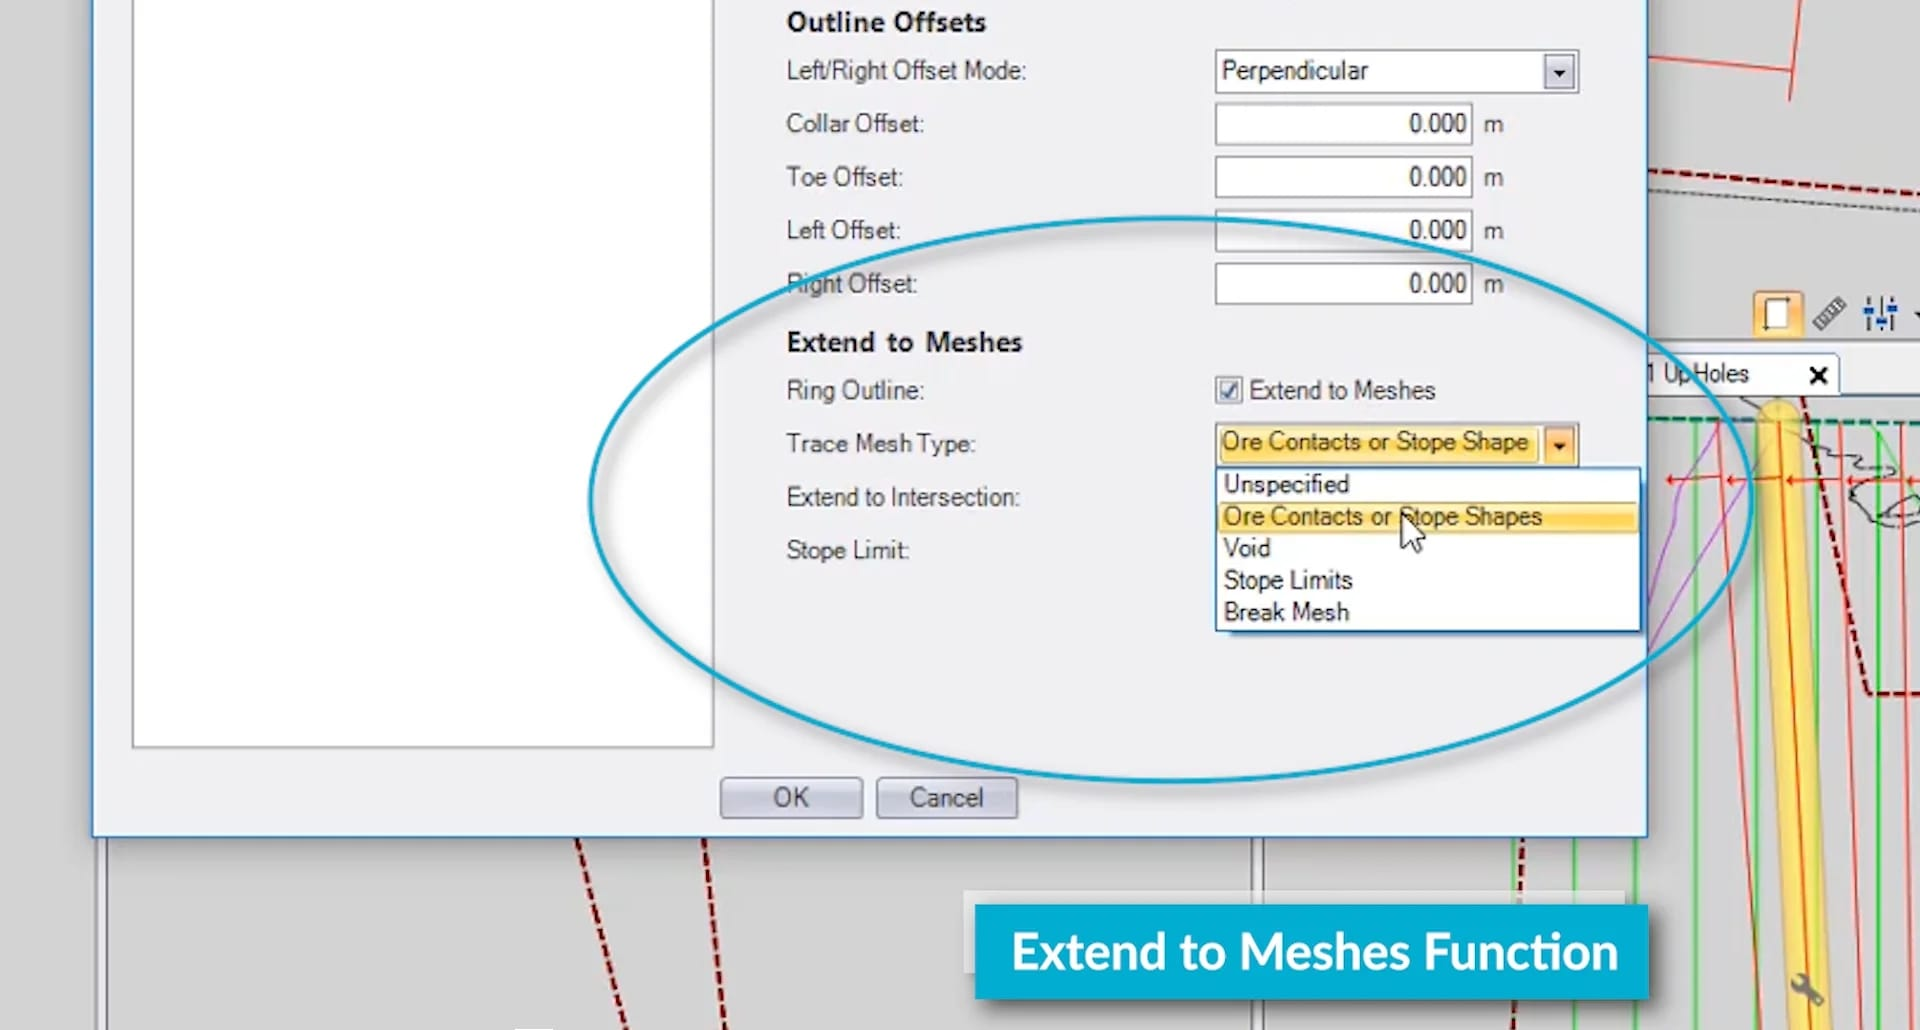 Extend to meshes function dialogue box open in Aegis- Underground Drill & Blast software